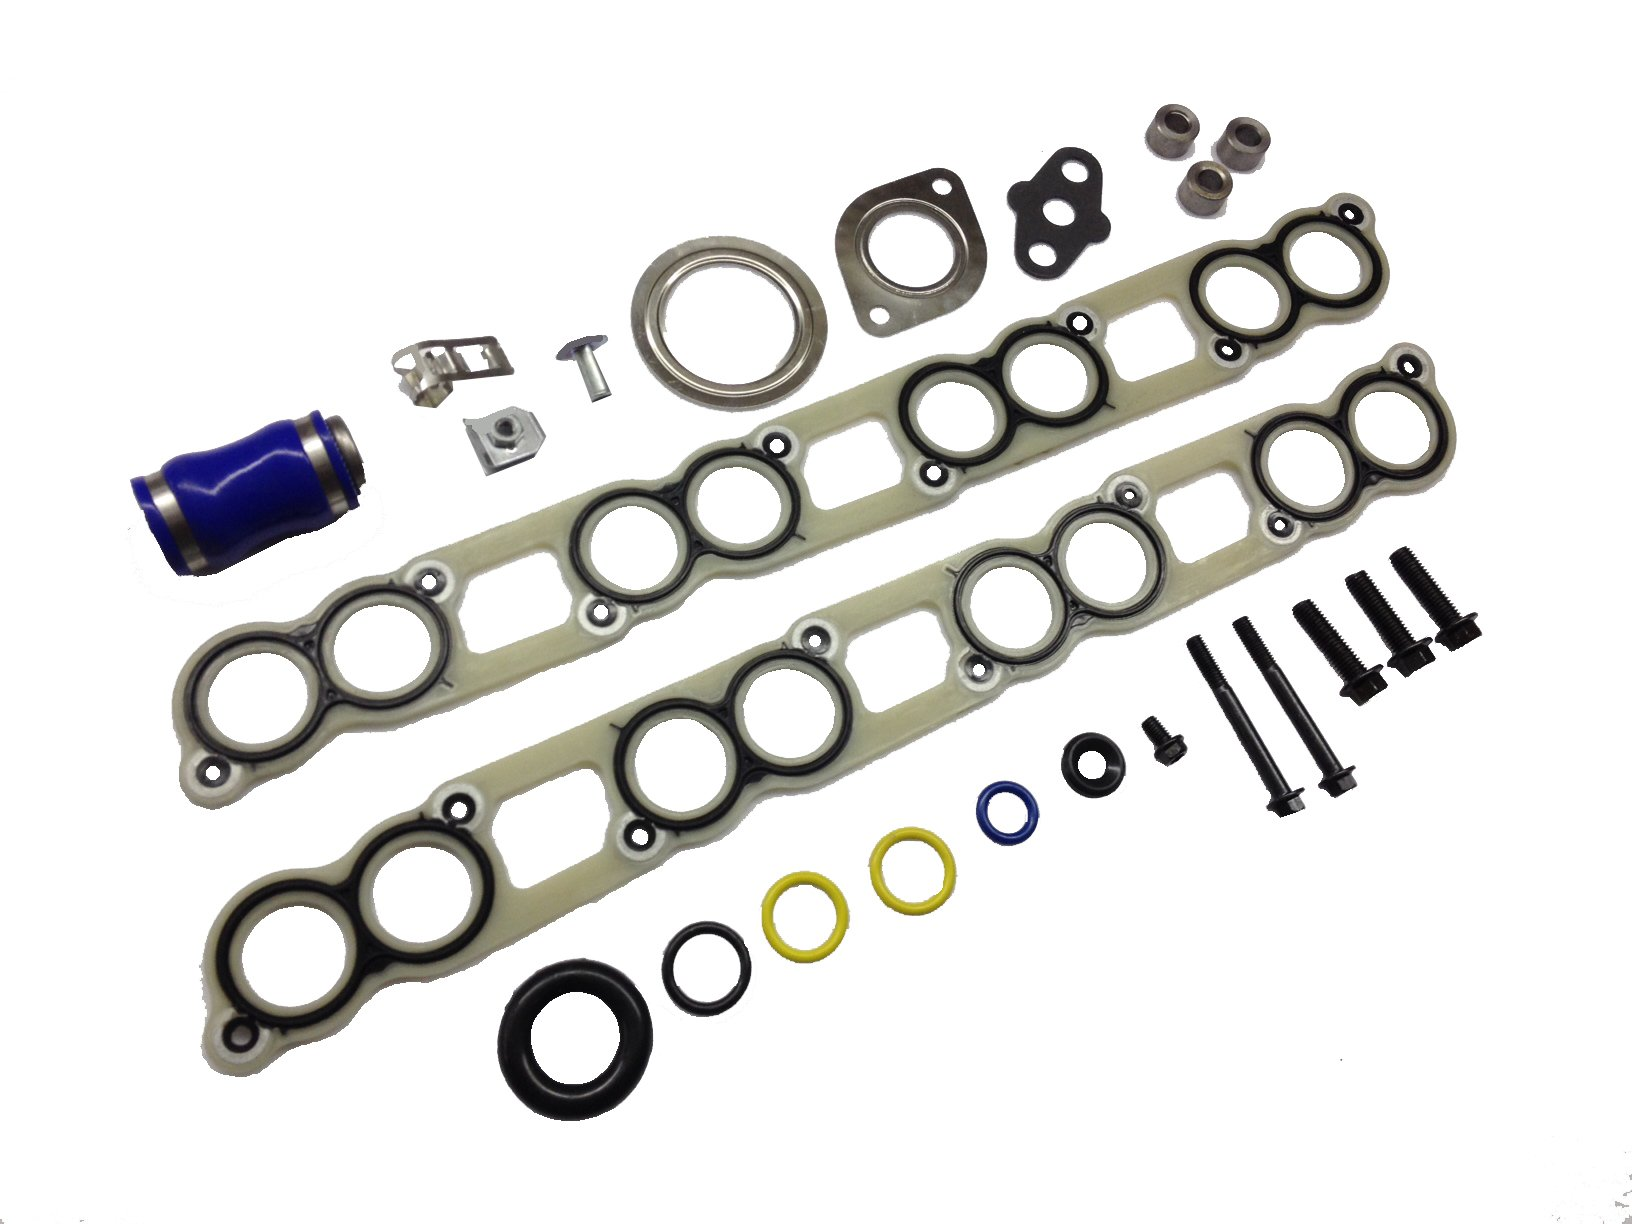 Ford 6.0L intake manifold gasket set with EGR Cooler and Turbo Installation gasket kit for 2003 - 2007 Ford 6.0L Powerstroke diesel F250 F350 F450 F550 Excursion E-Series